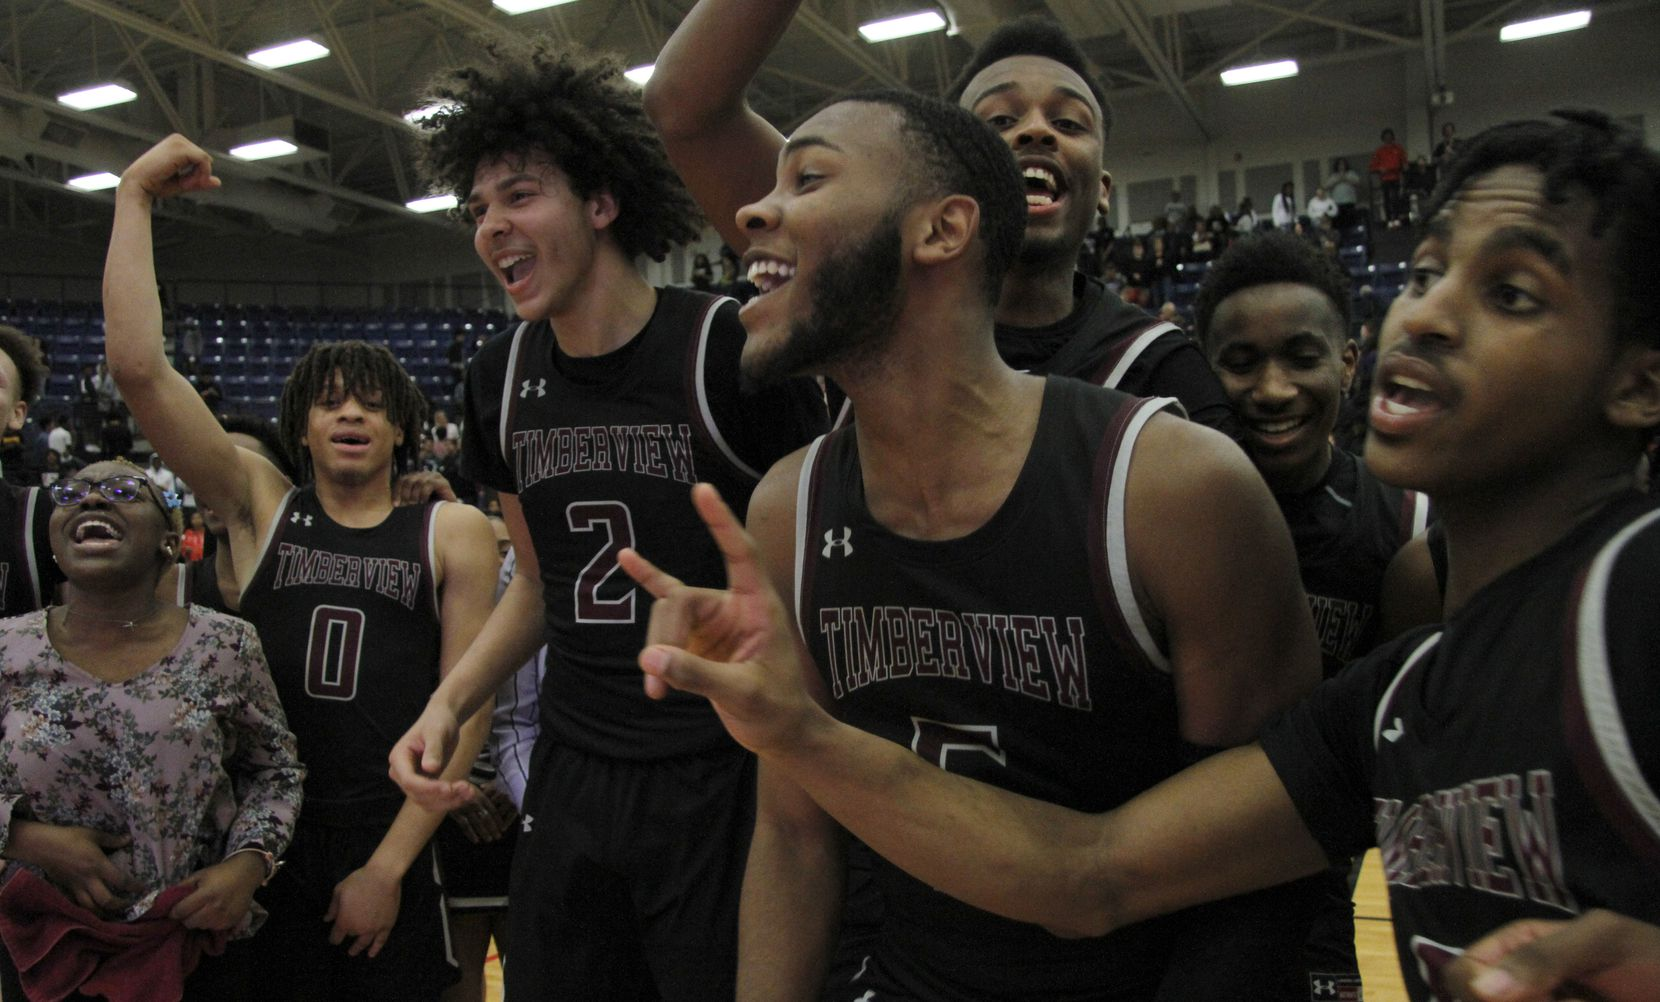 Members of the Mansfield Timberview varsity boys basketball team assemble at mid-court in celebration of their 41-40 overtime victory over Mansfield Legacy to advance. The two teams played in the Class 5A Region 1 quarterfinal boys basketball playoff game at Mansfield Lake Ridge High School in Mansfield on March 3, 2020.